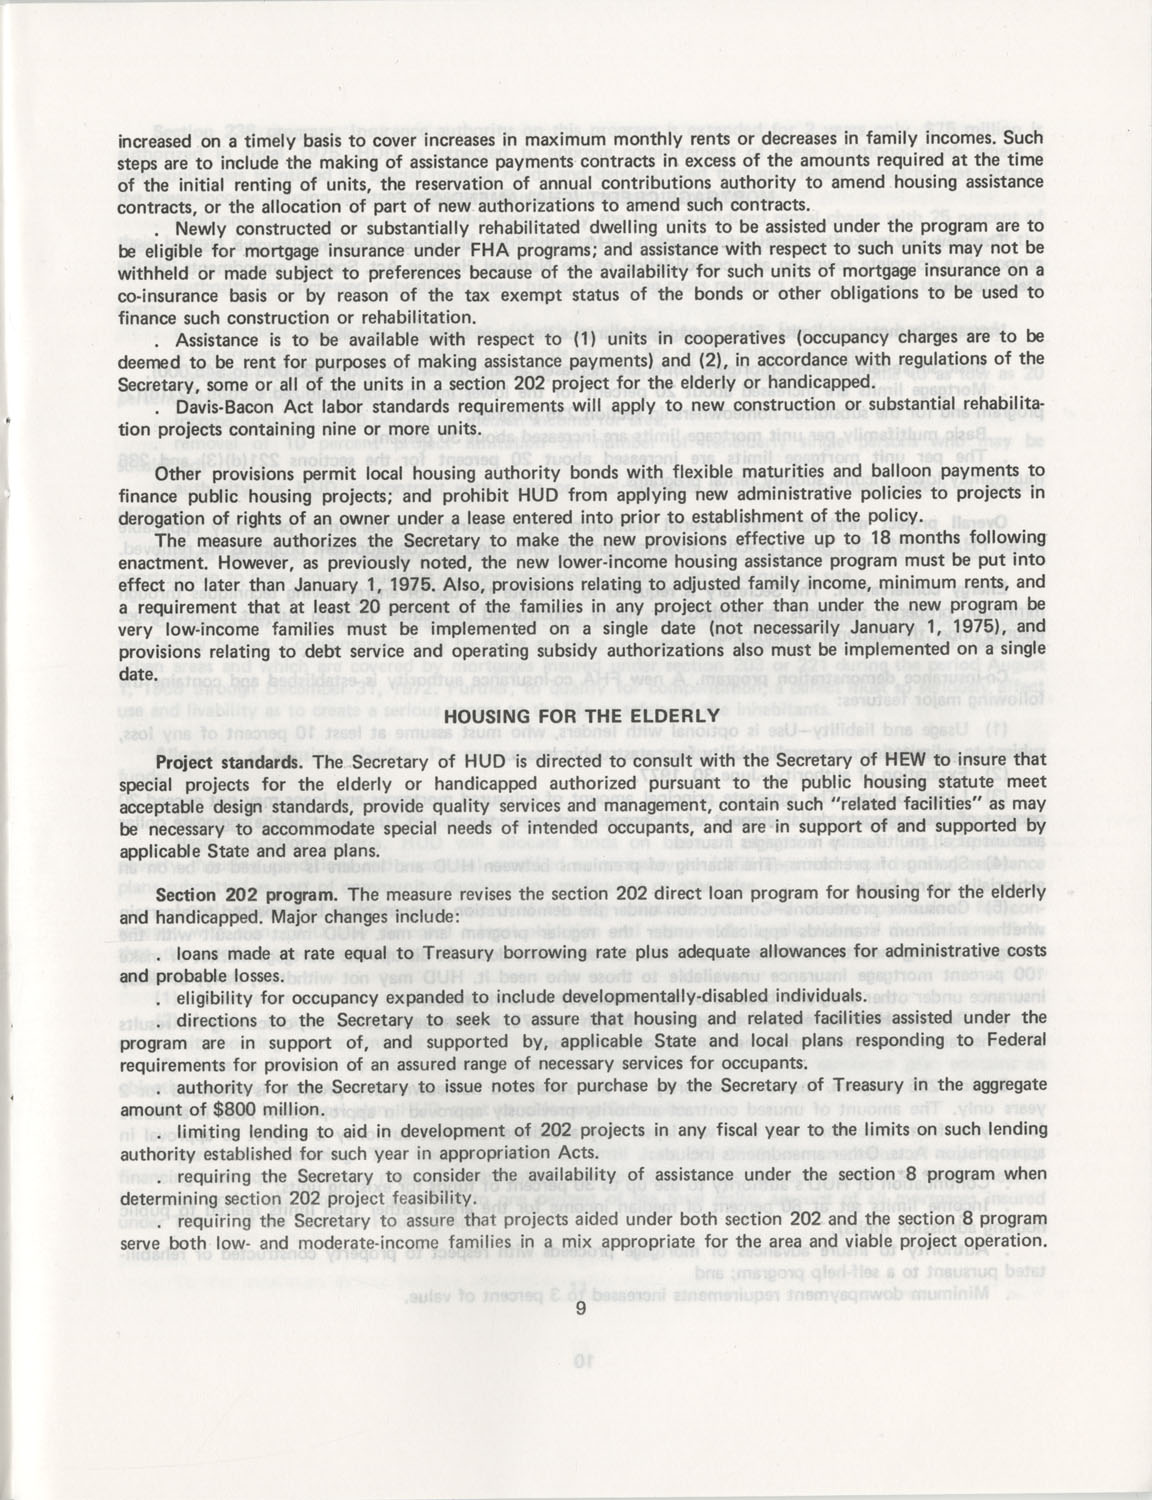 Summary of the Housing and Community Development Act of 1974, Page 9